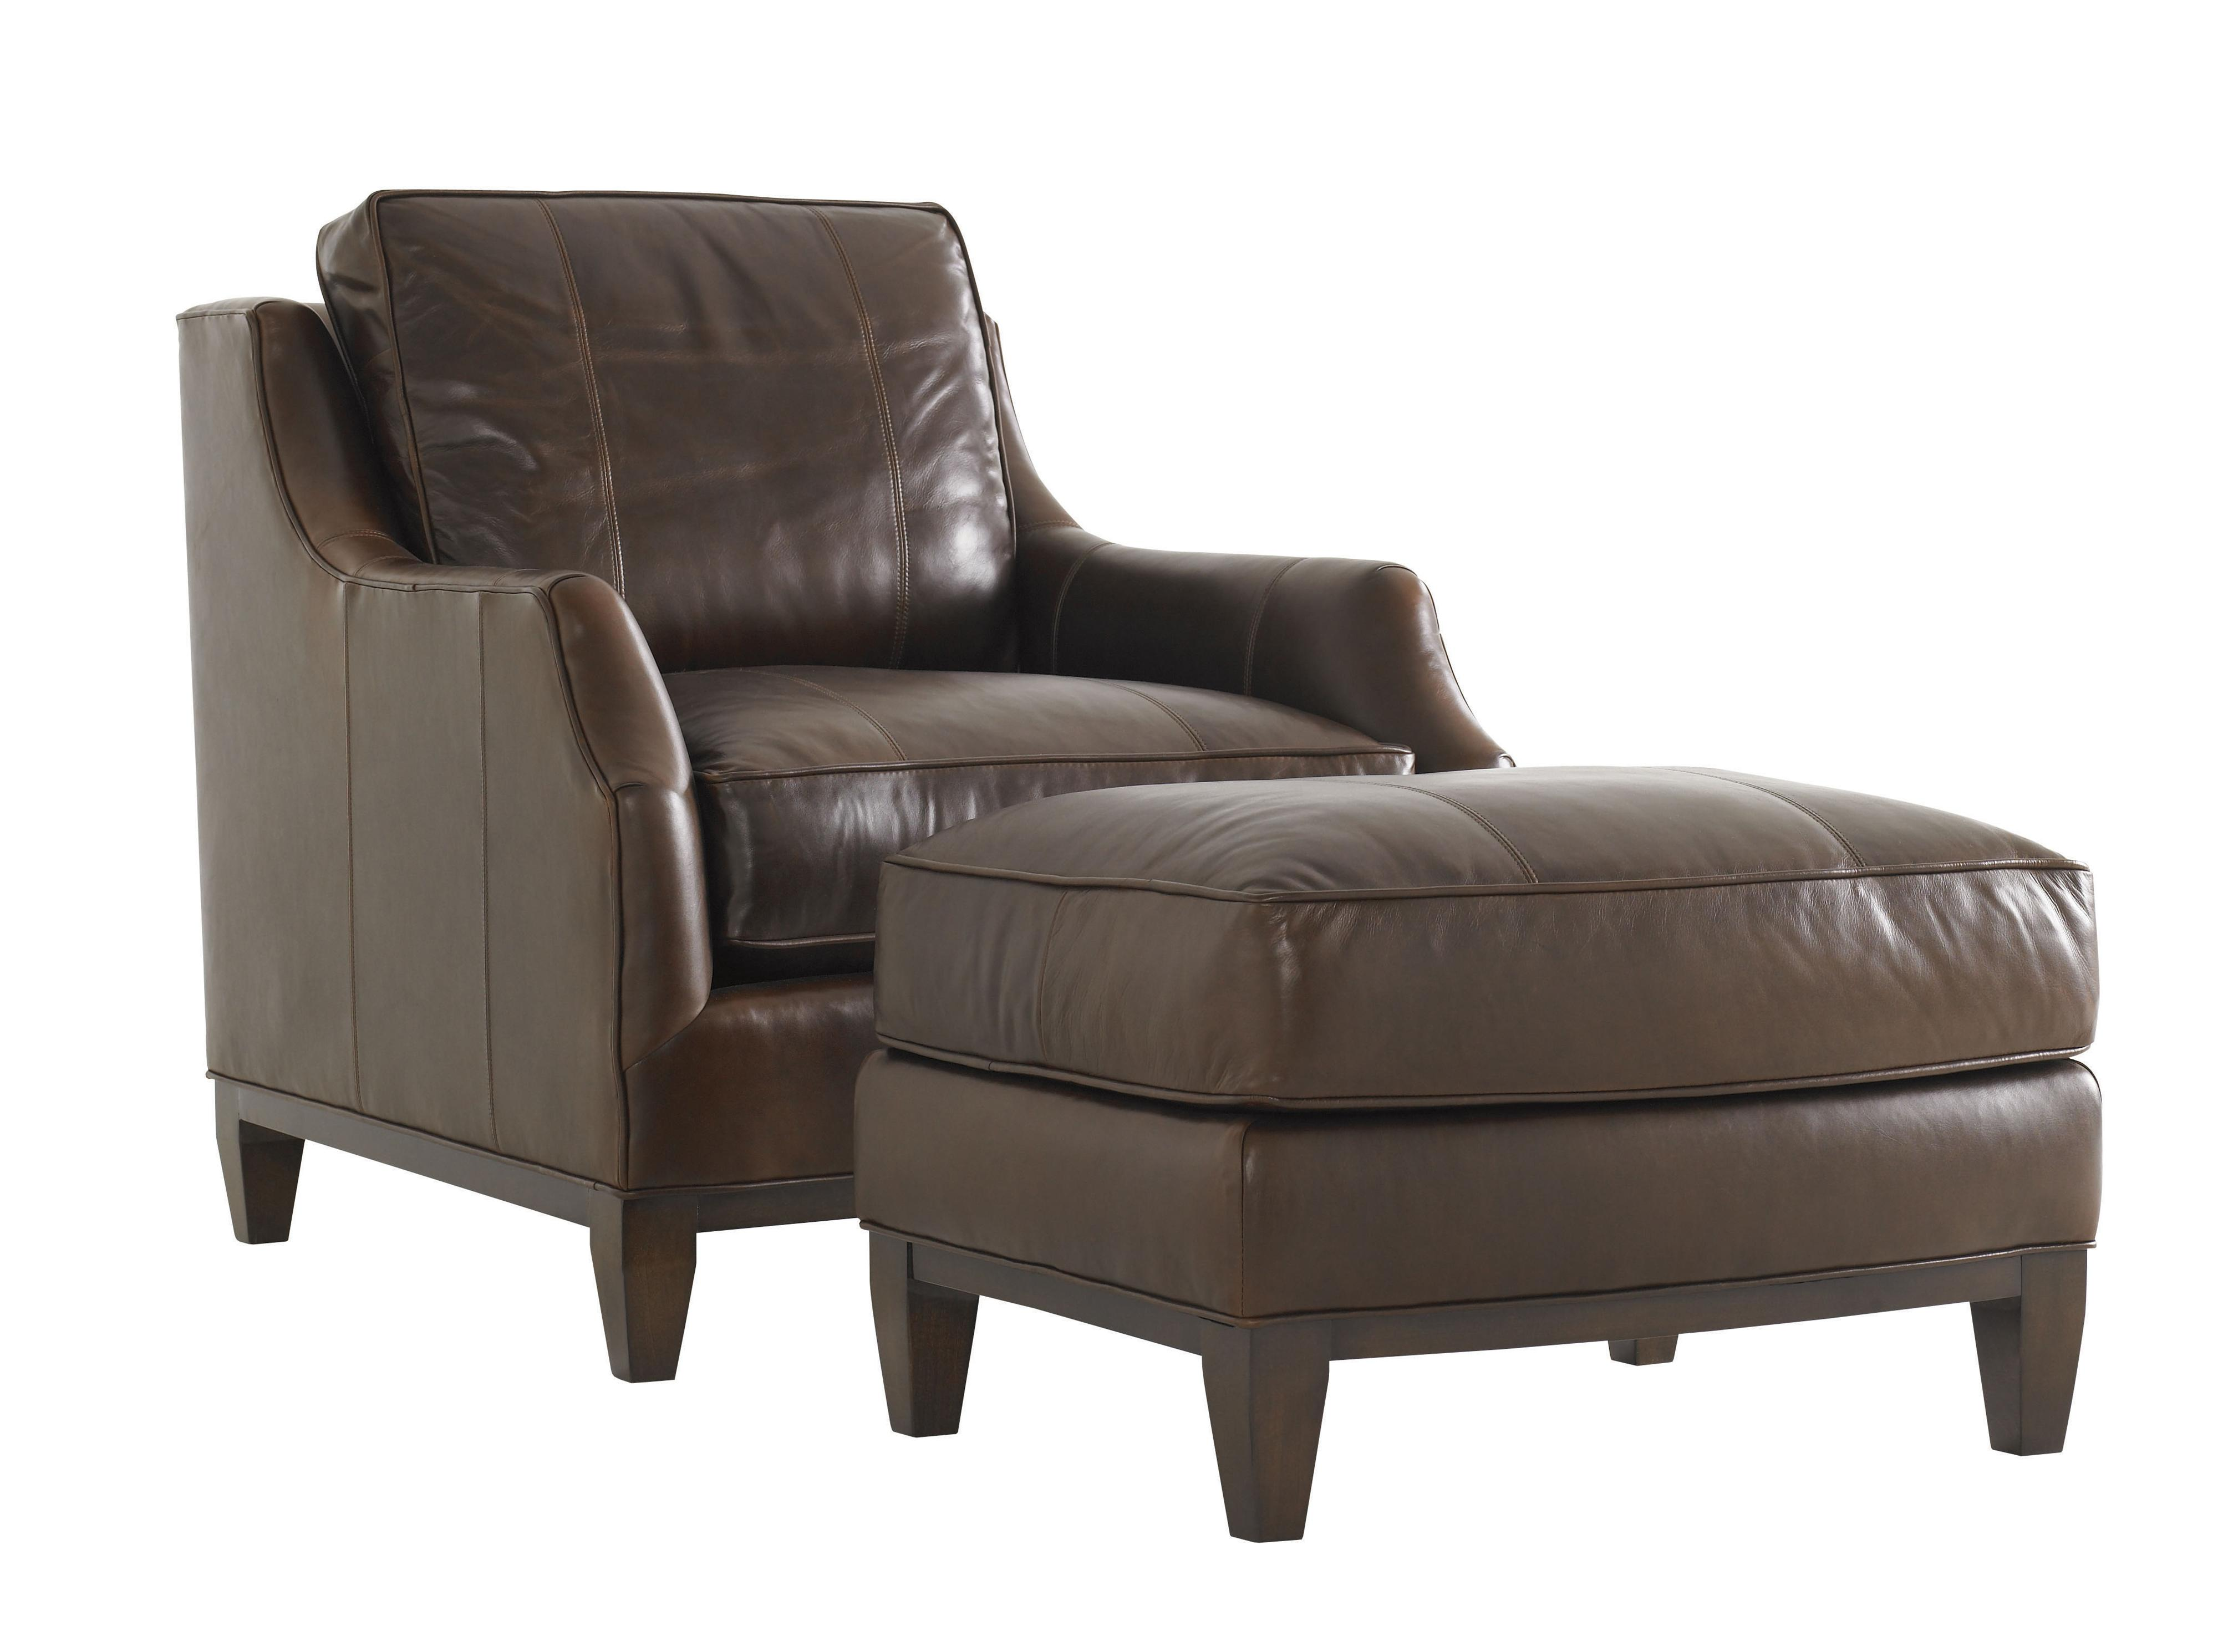 Lexington tower place contemporary conrad chair with exposed wood base belfort furniture Home brands furniture trentham